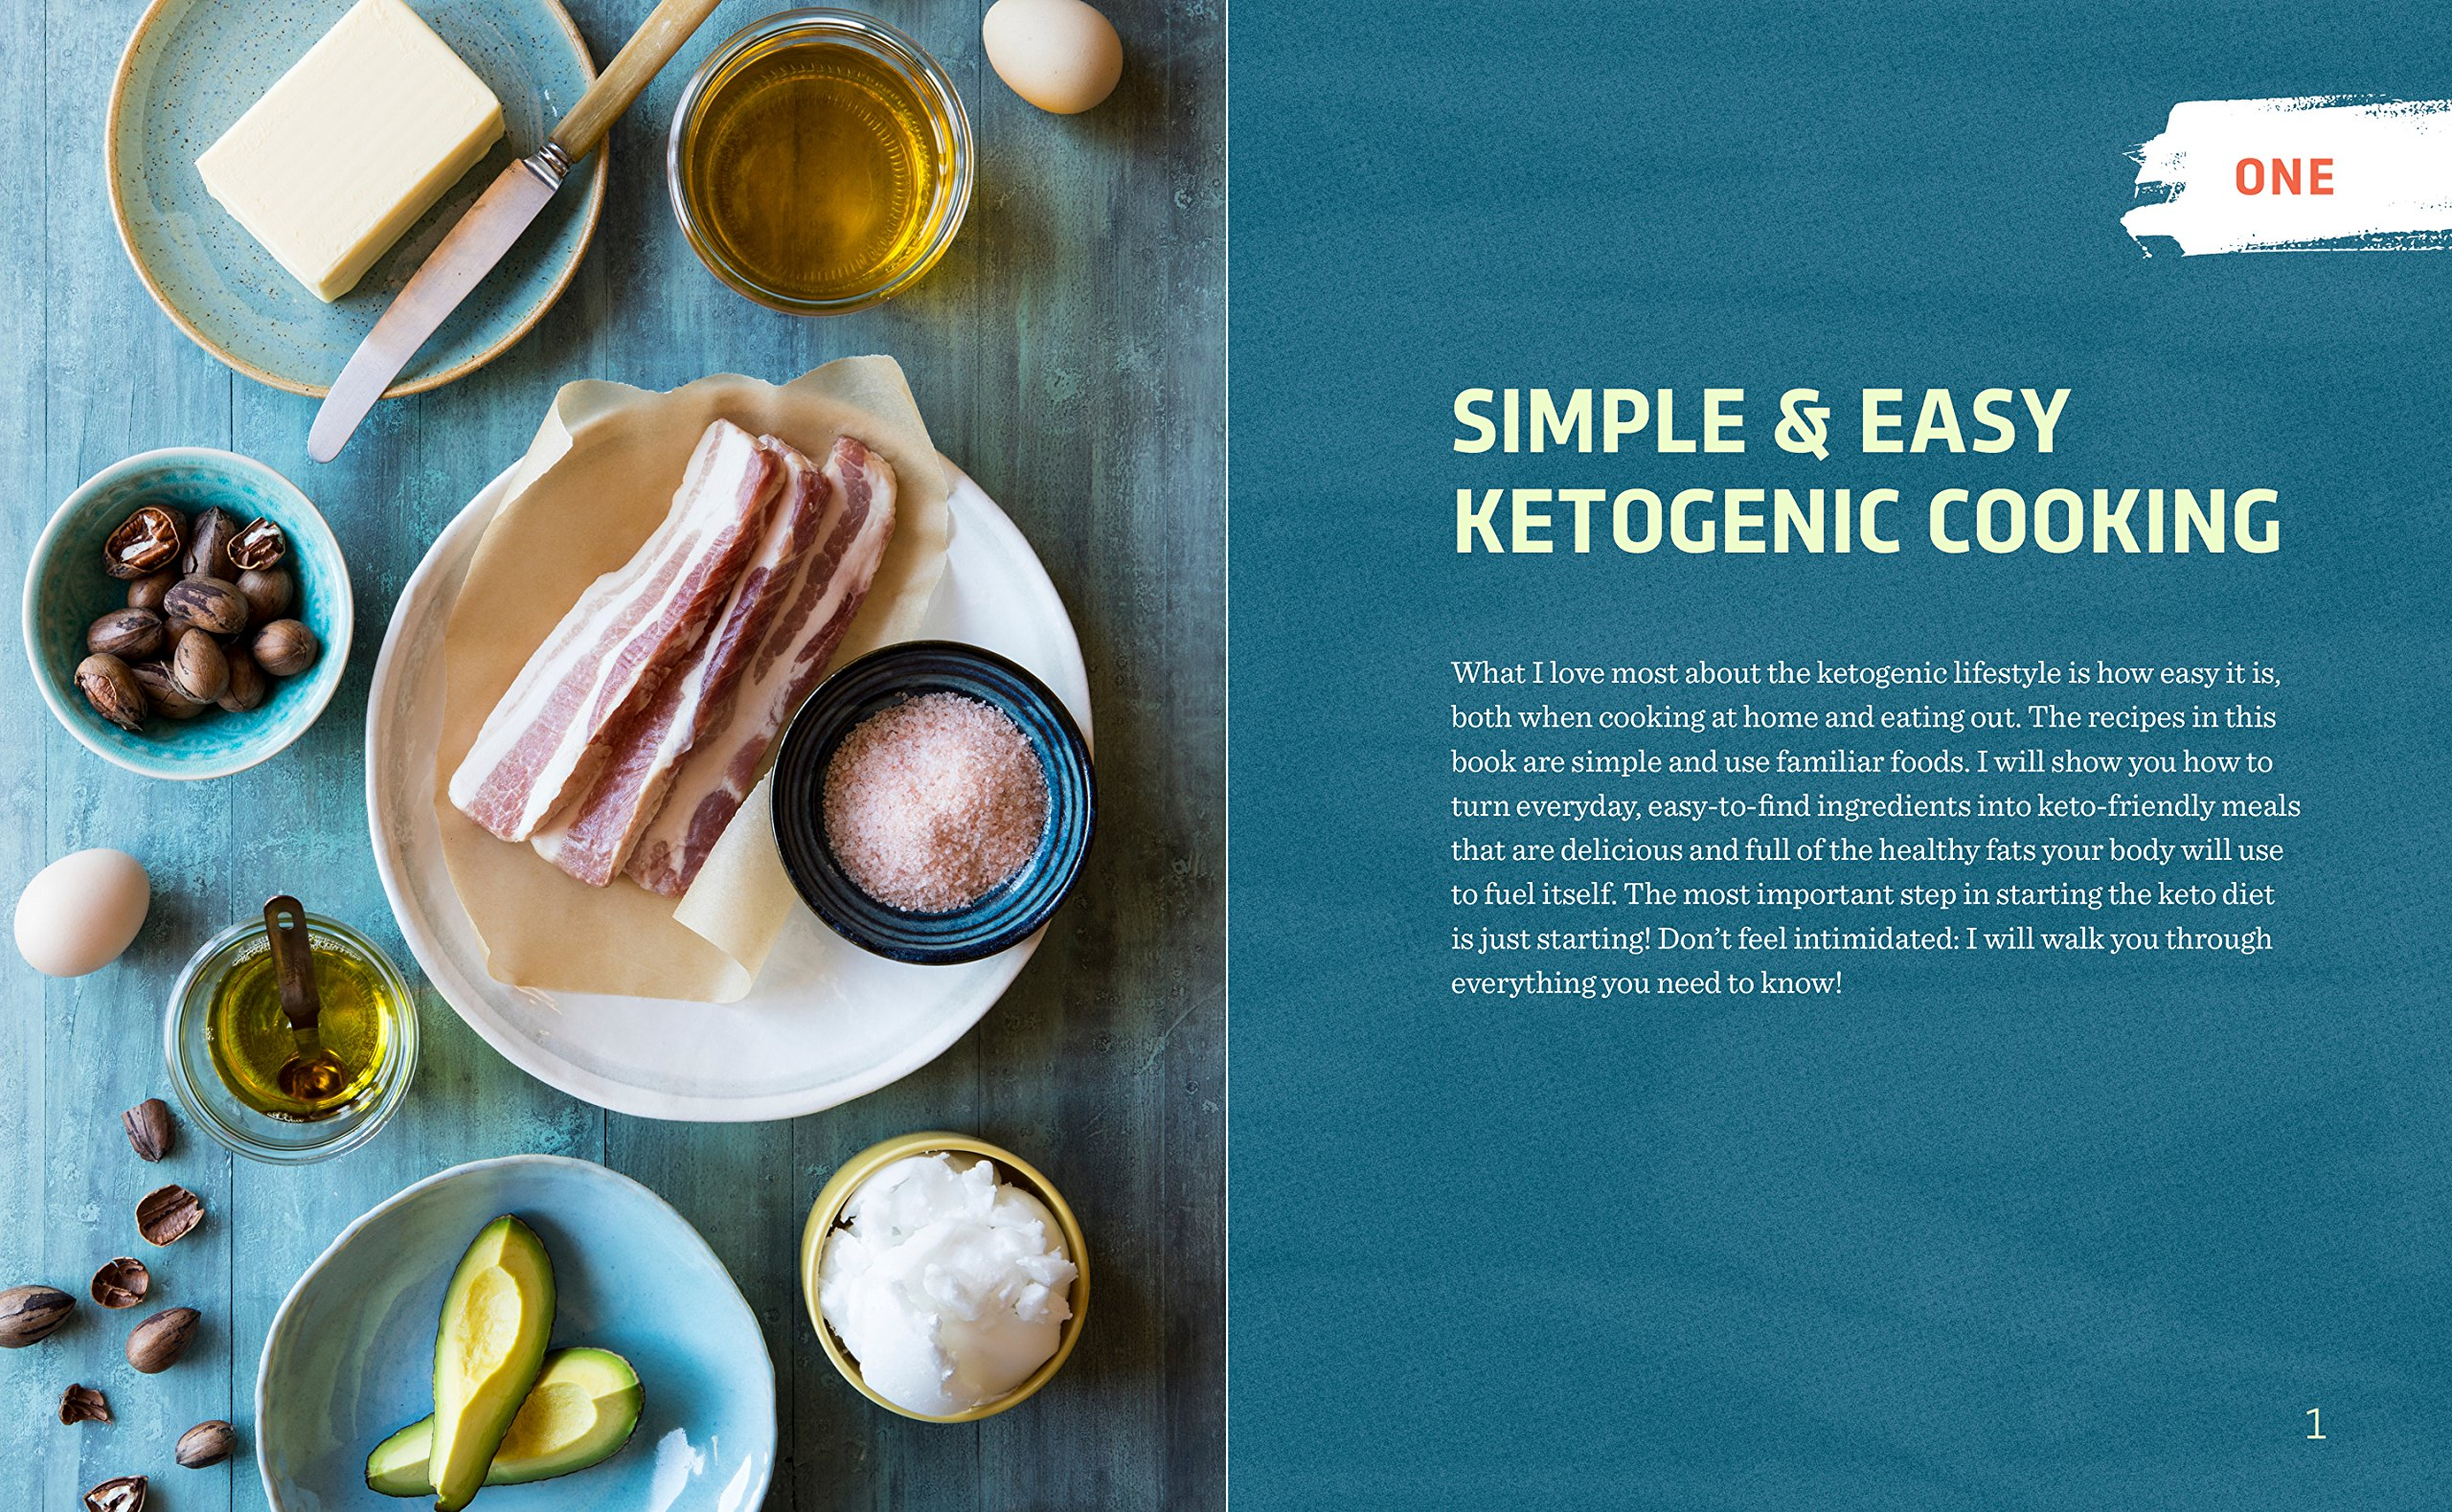 The Easy 5-Ingredient Ketogenic Diet Cookbook: Low-Carb, High-Fat Recipes  for Busy People on the Keto Diet: Jen Fisch: Amazon.com.mx: Libros